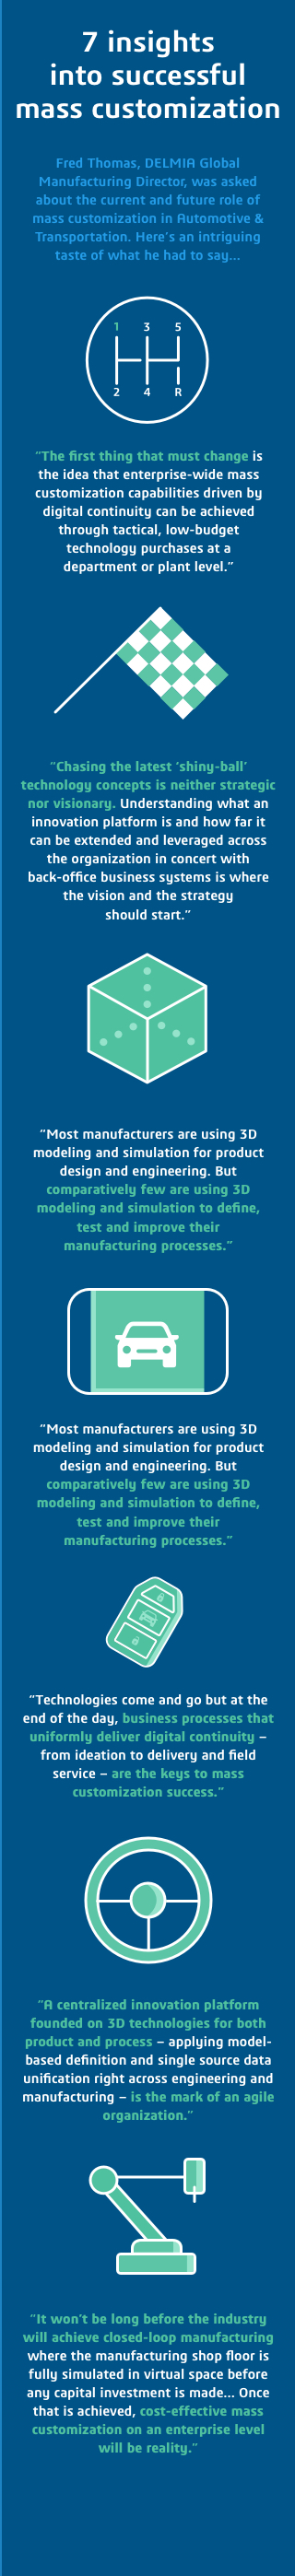 Mass customization > 7 insights into successful mass customization > Dassault SystèmesMass customization > The Journey to Leaner Manufacturing > Dassault Systèmes®